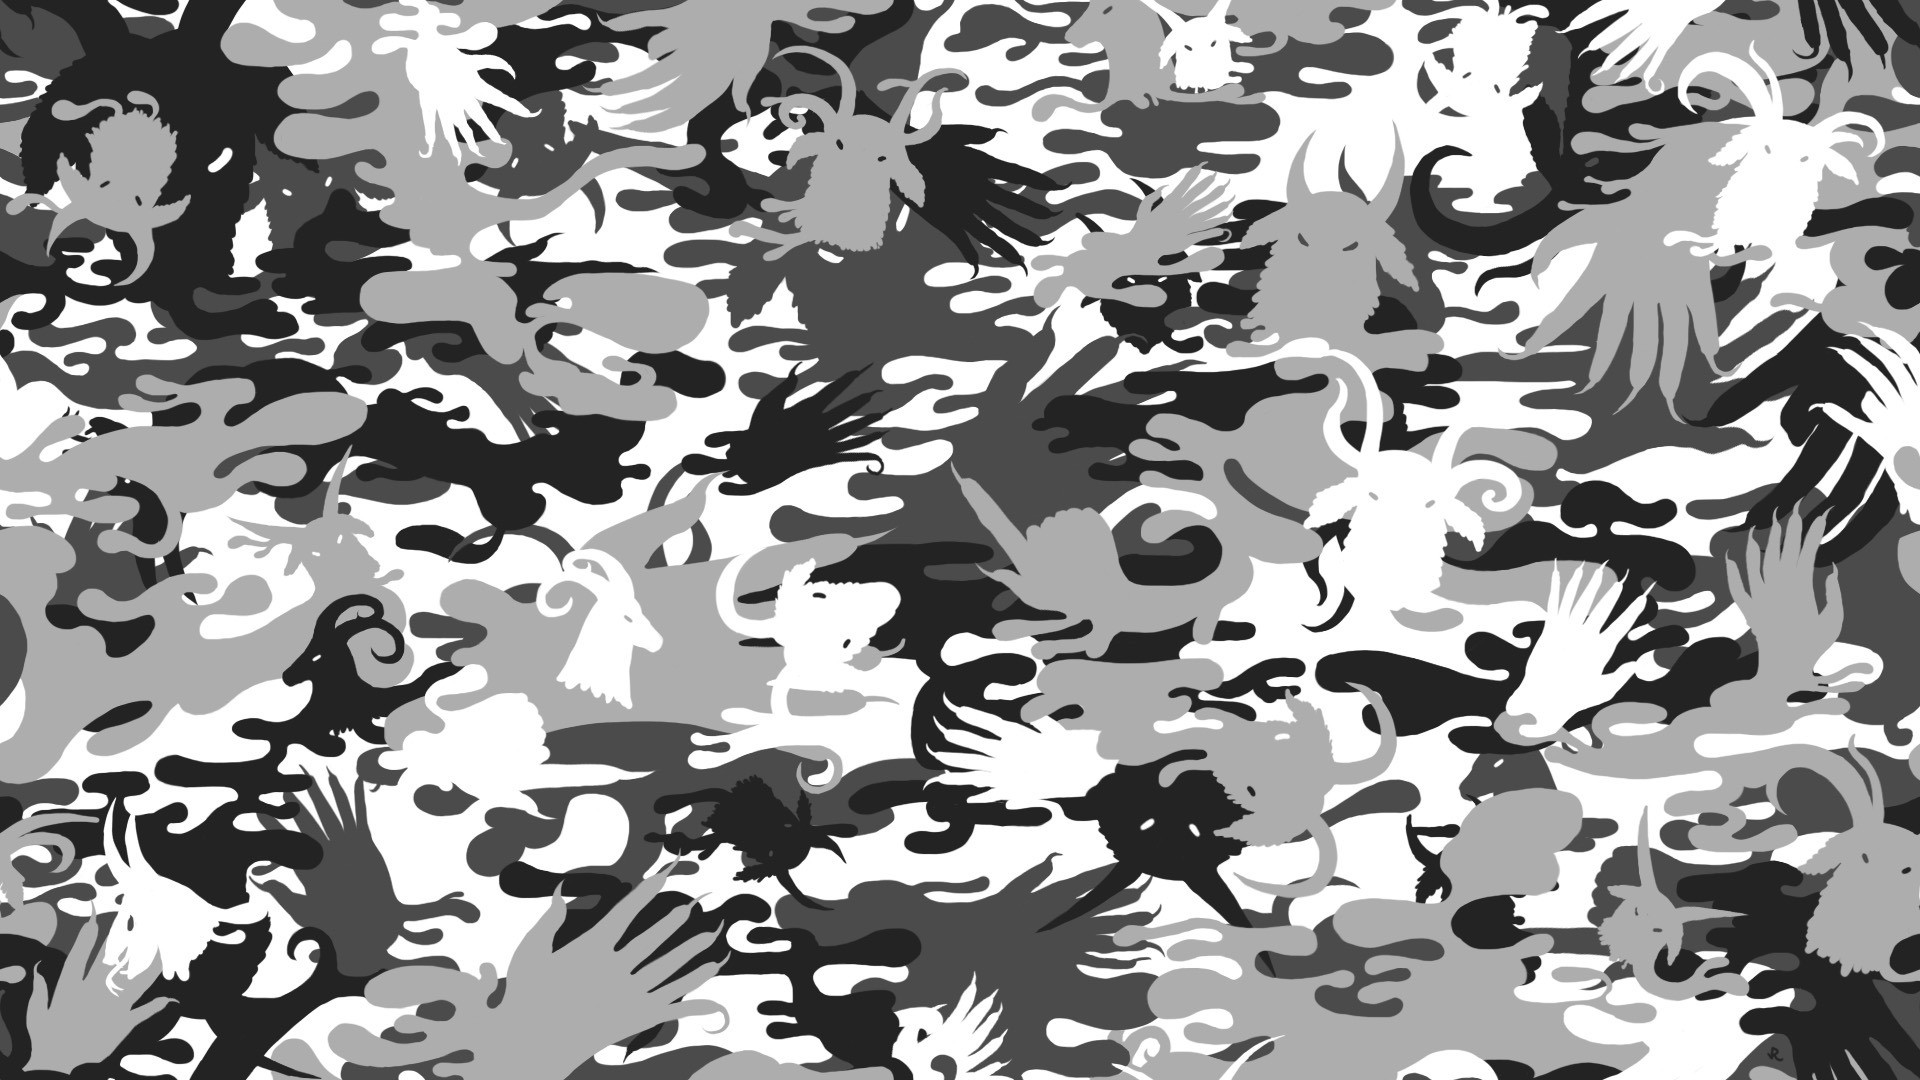 War Black And White Urban Camouflage Seamless Vector Pattern .